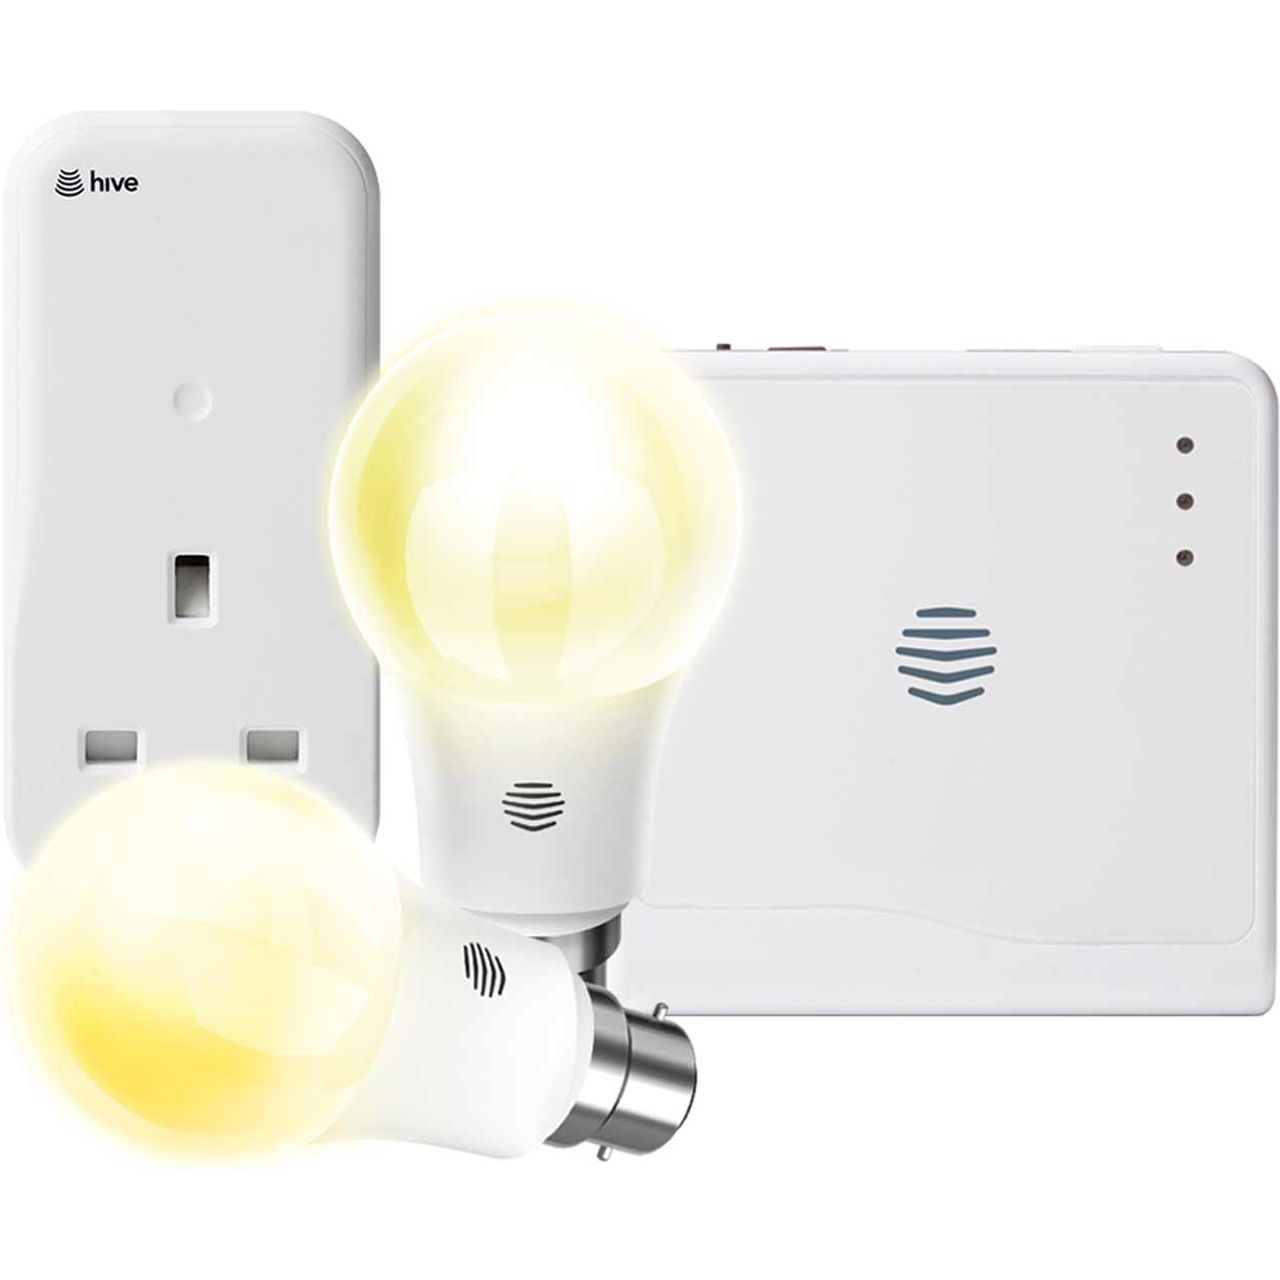 sc 1 st  AO.com & UK7001836 | Hive smart home starter pack | ao.com